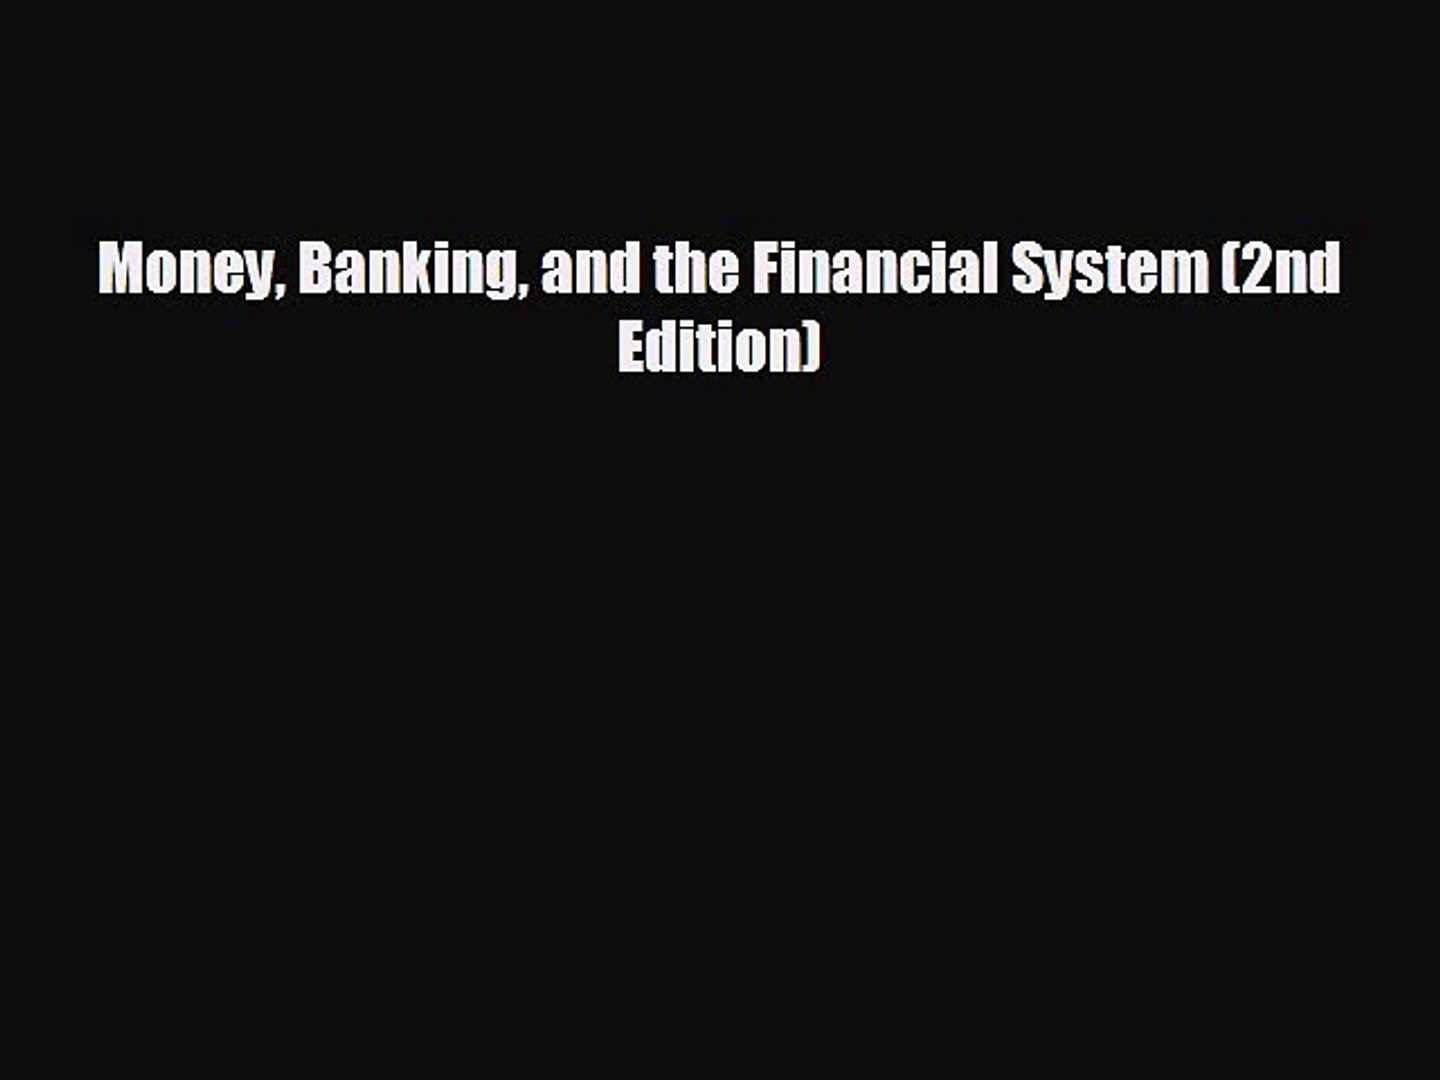 Free [PDF] Downlaod Money Banking and the Financial System (2nd Edition) READ ONLINE